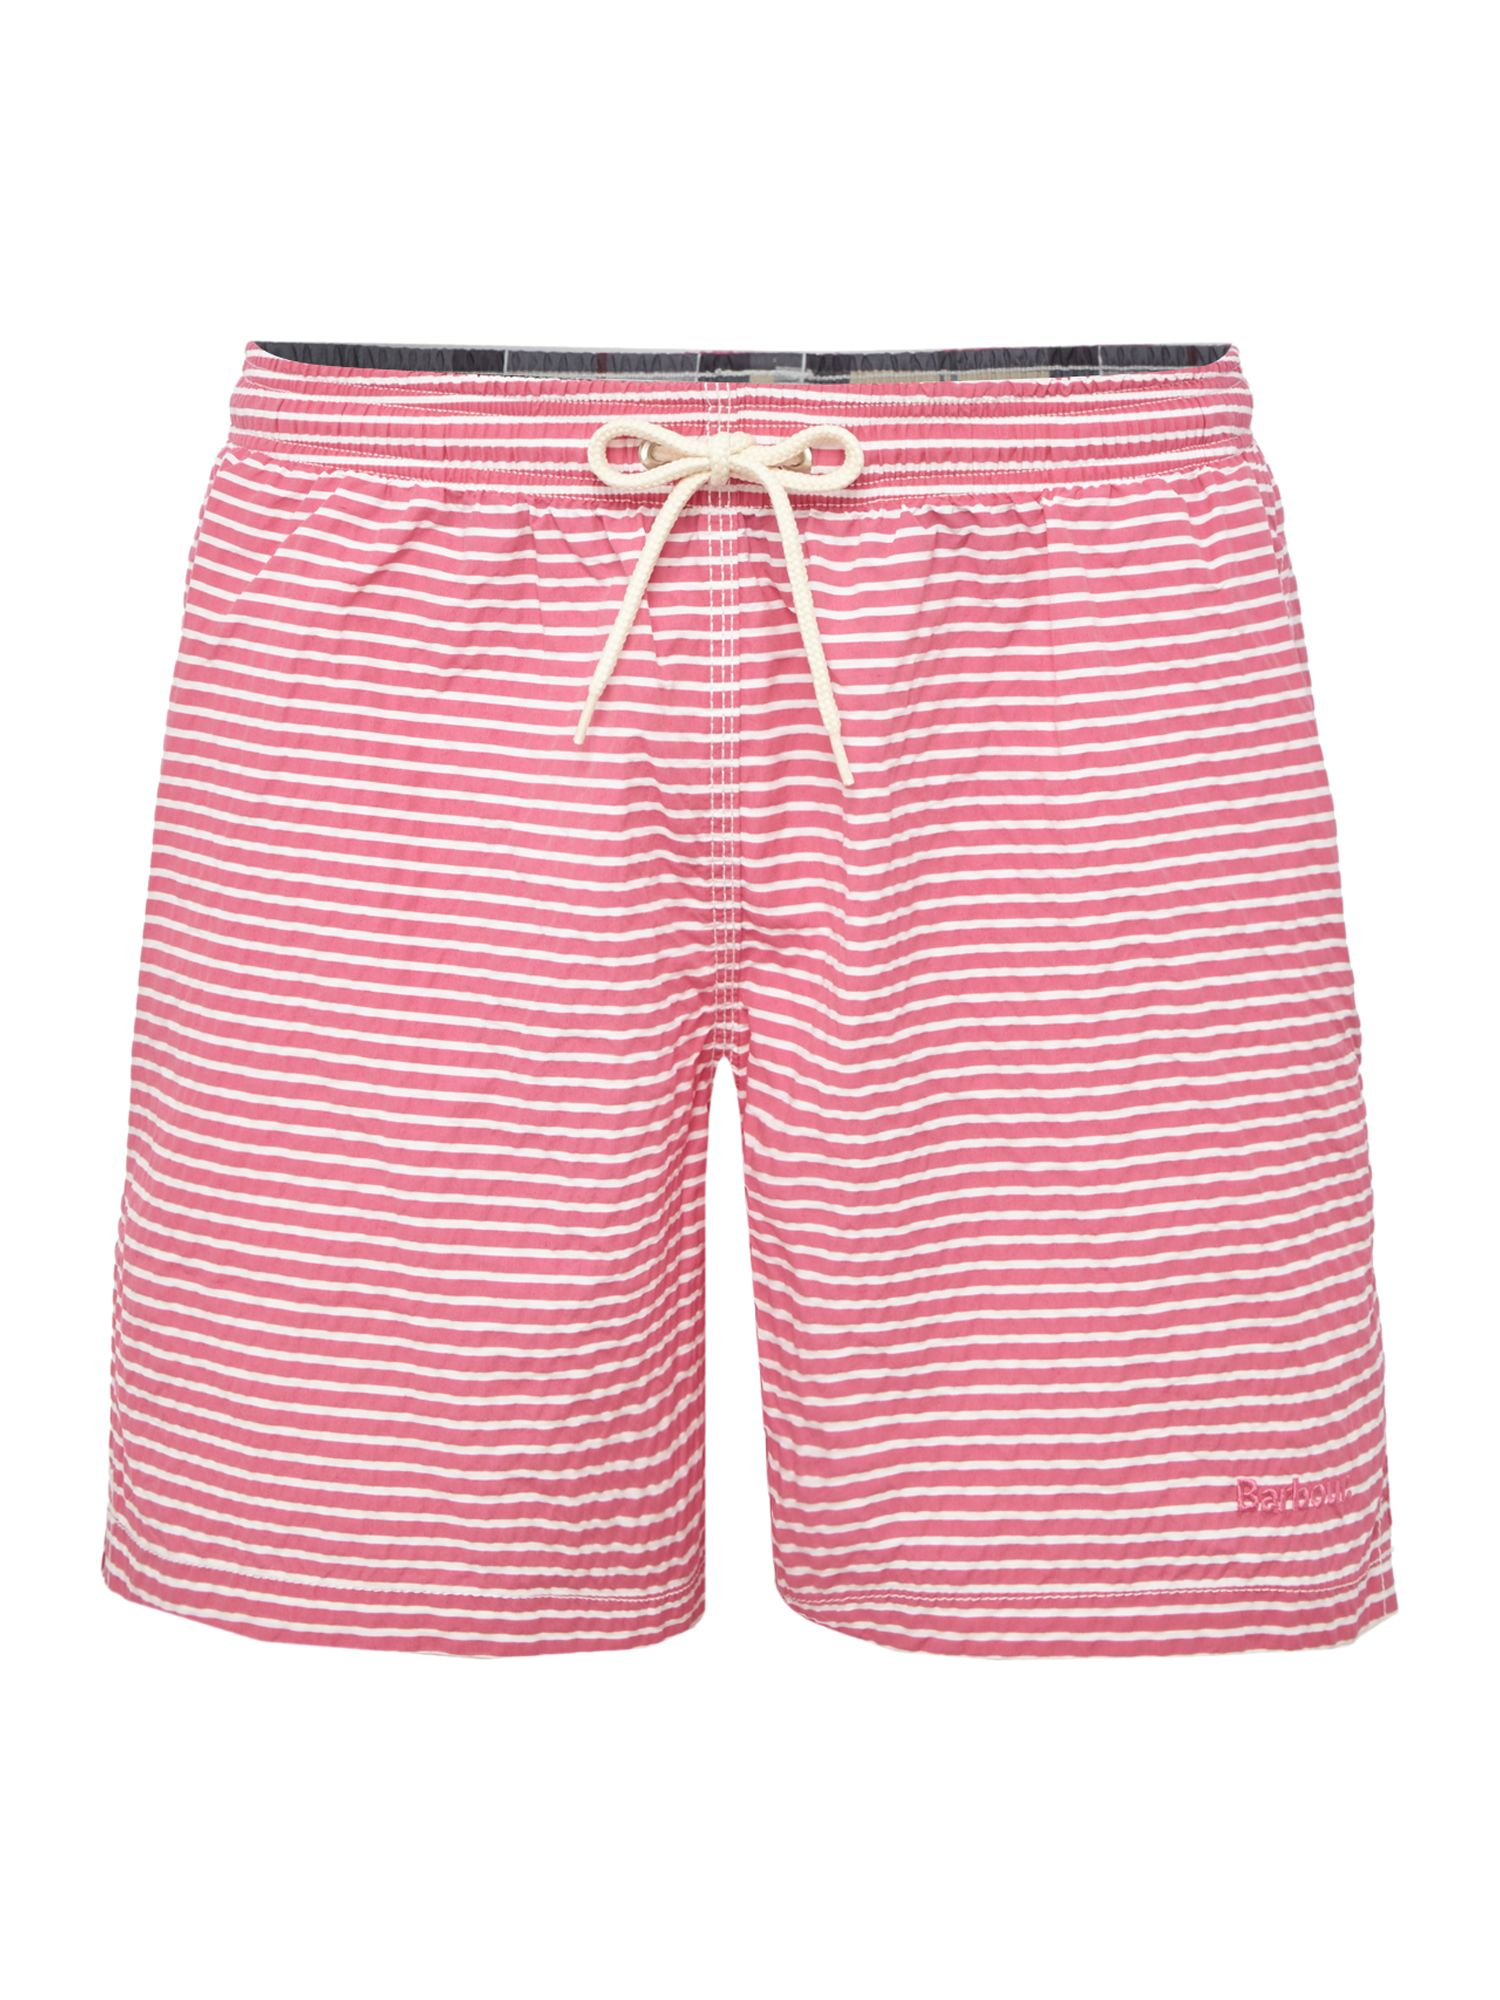 Men's Barbour Stripe Logo Swim Shorts, Pink